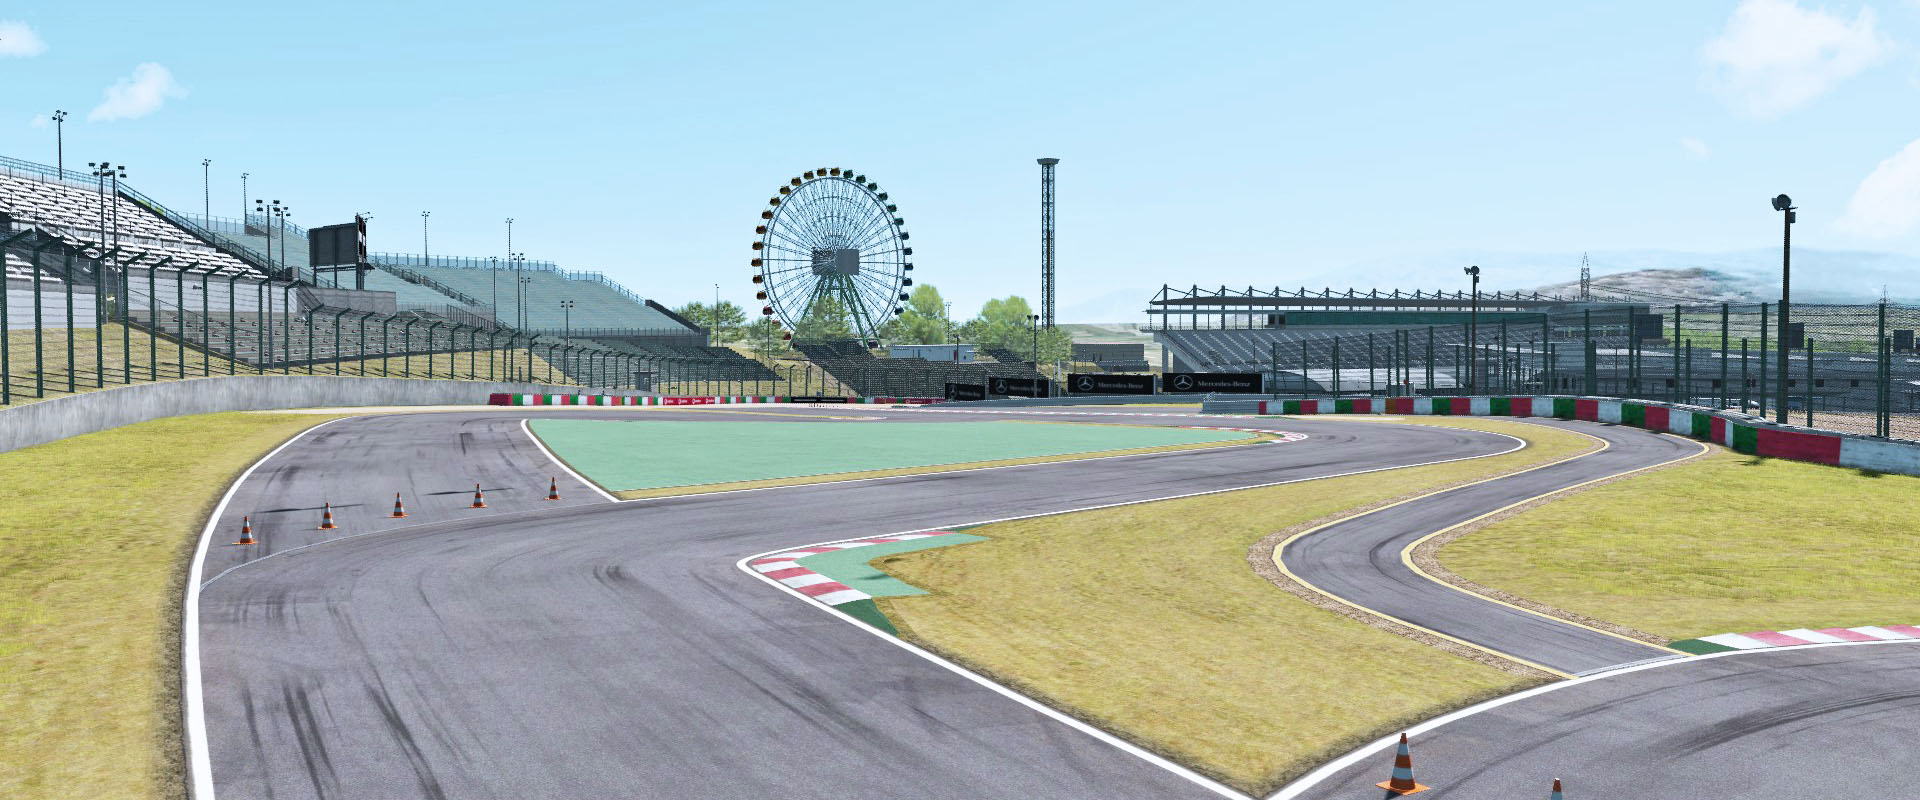 12-Suzuka-Preview